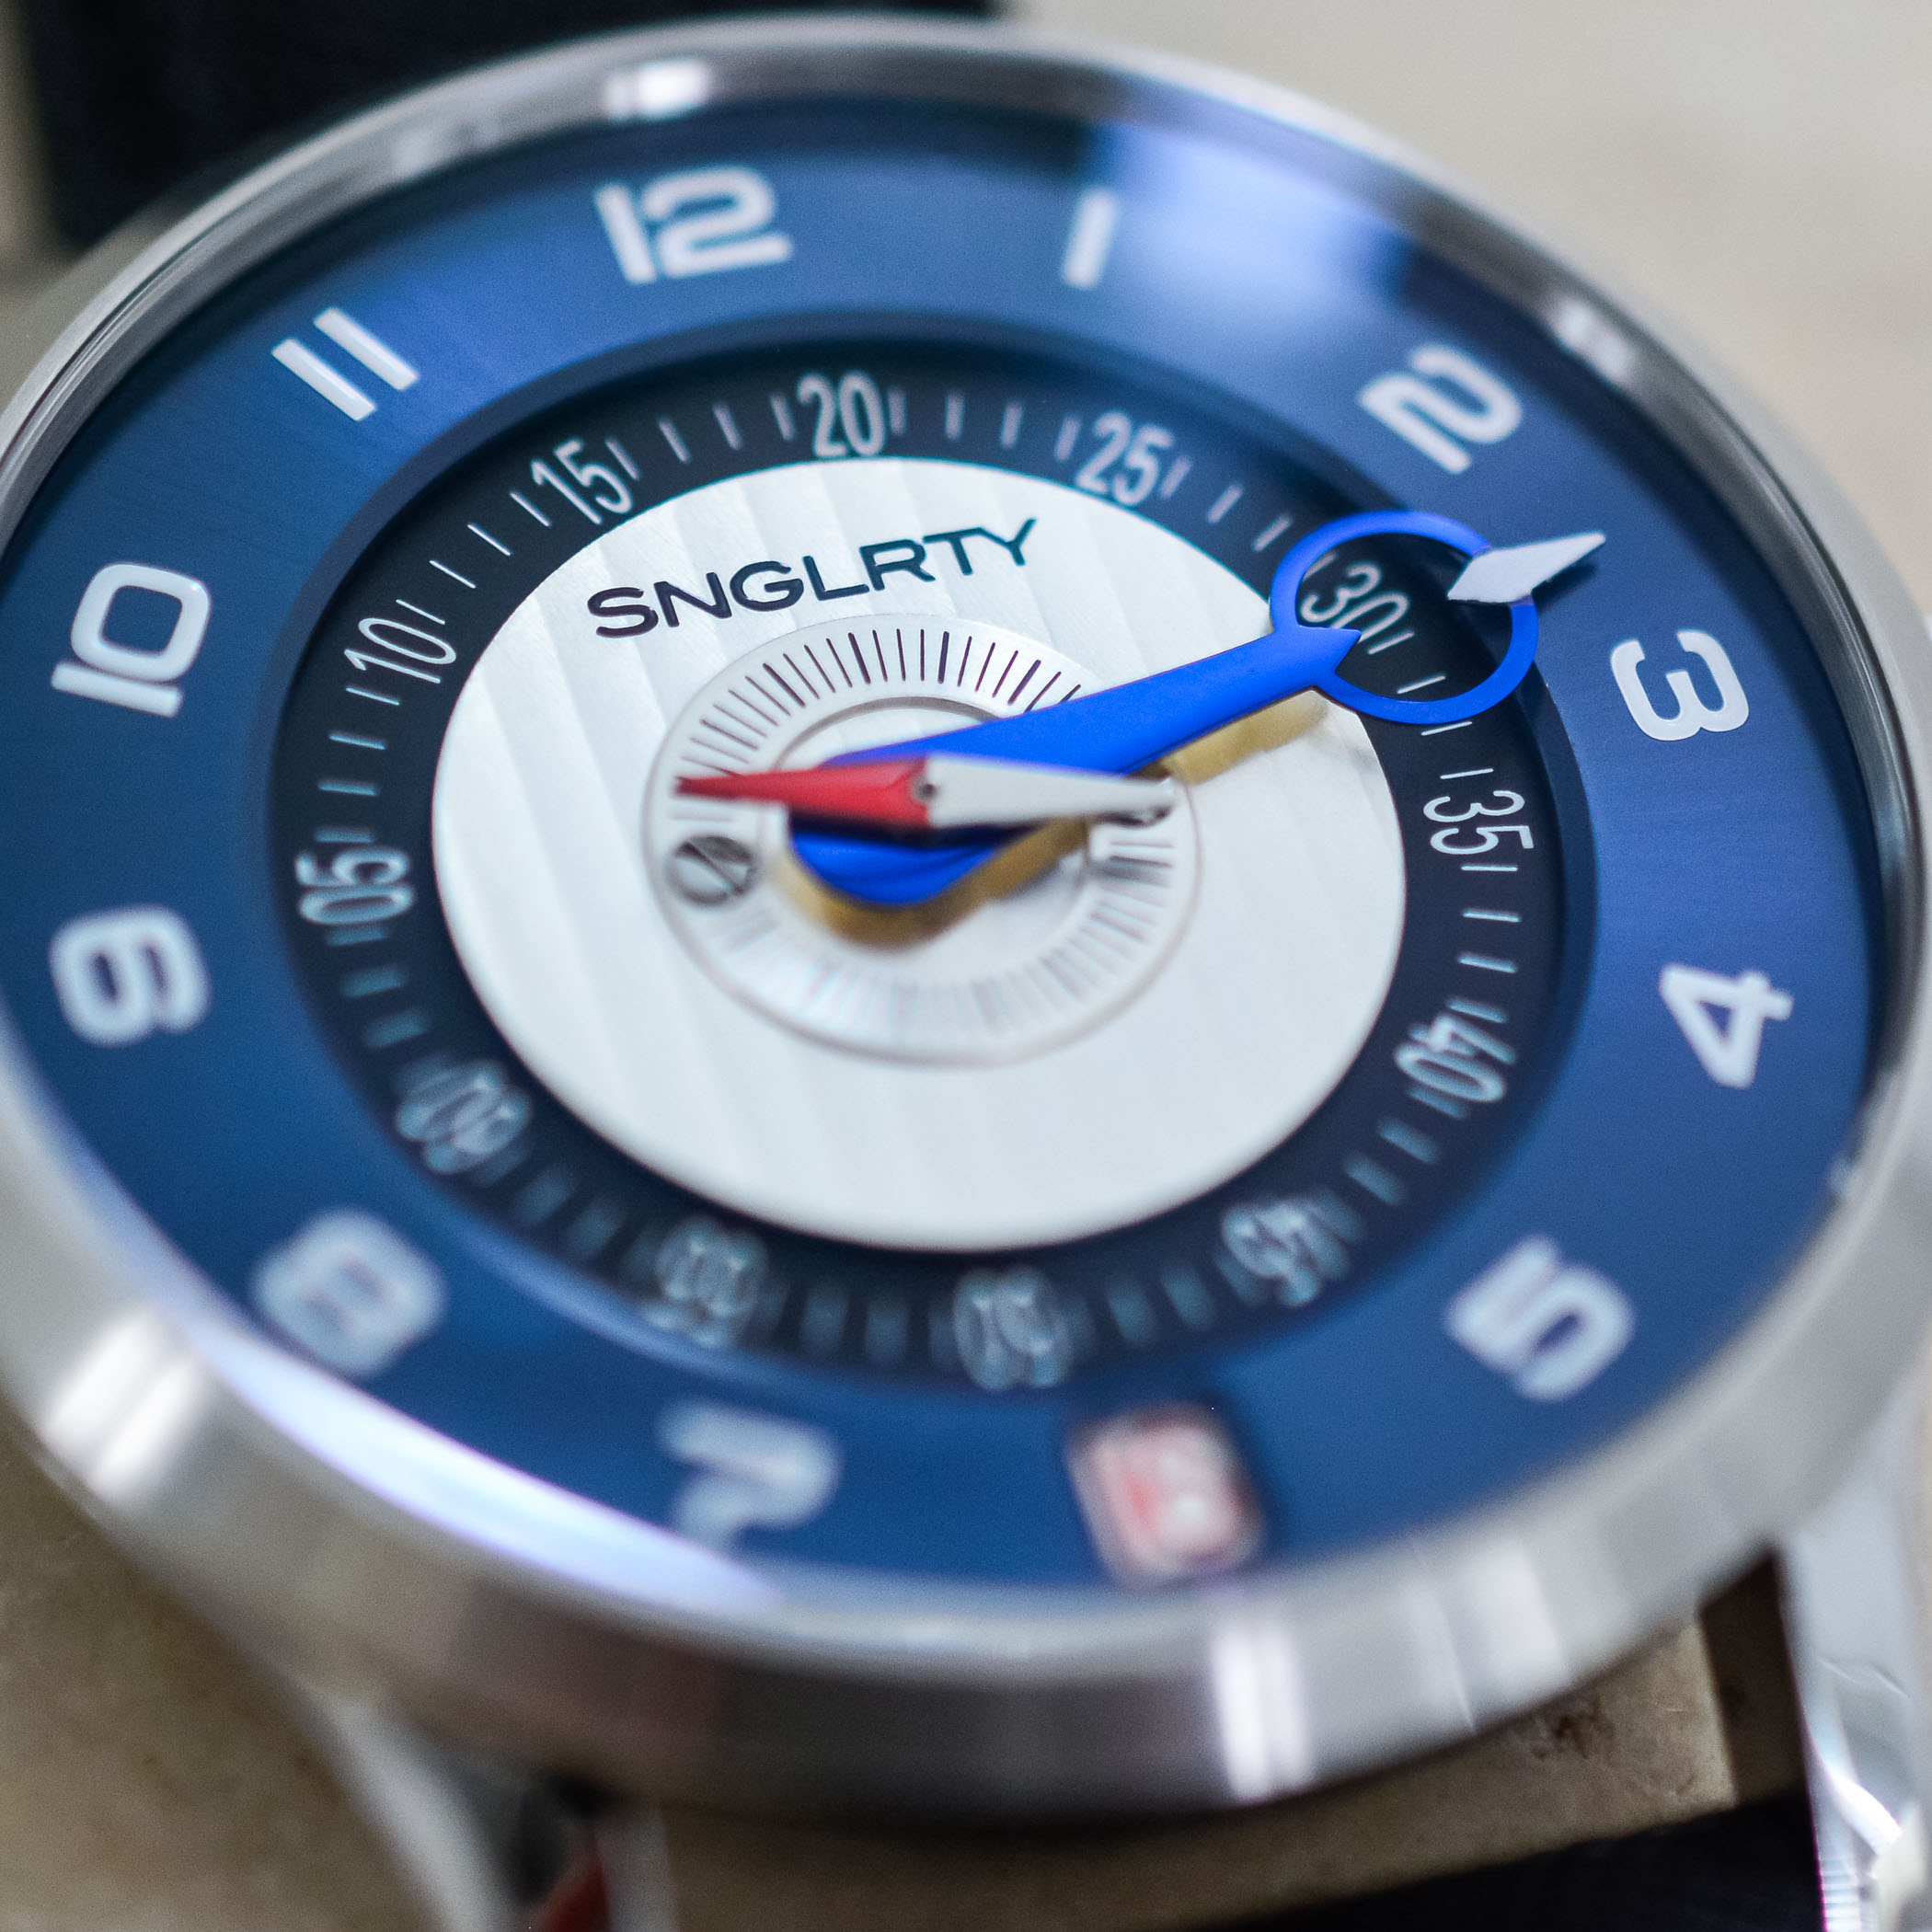 SNGLRTY Blue Steel OHI-4 patented display watch independent watchmaking